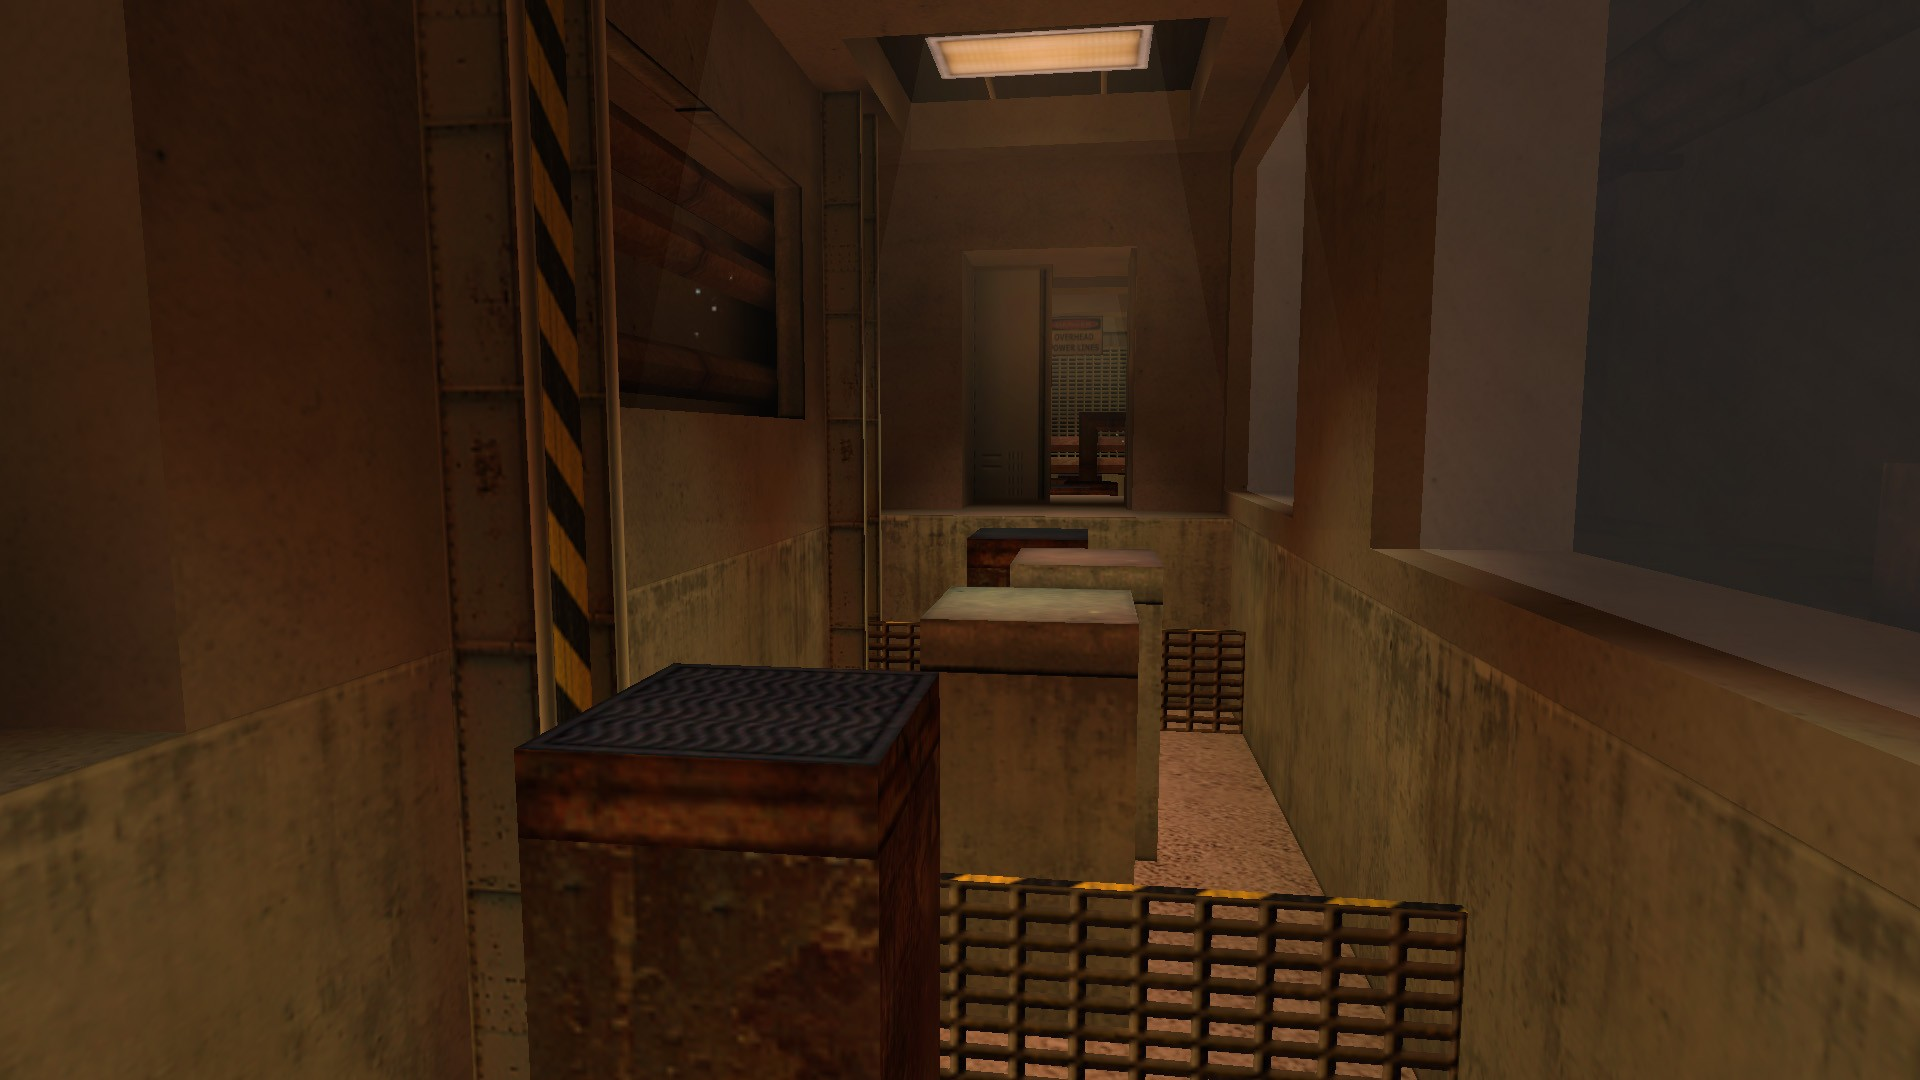 Counter-Strike Map - deathrun_prime screenshot 1